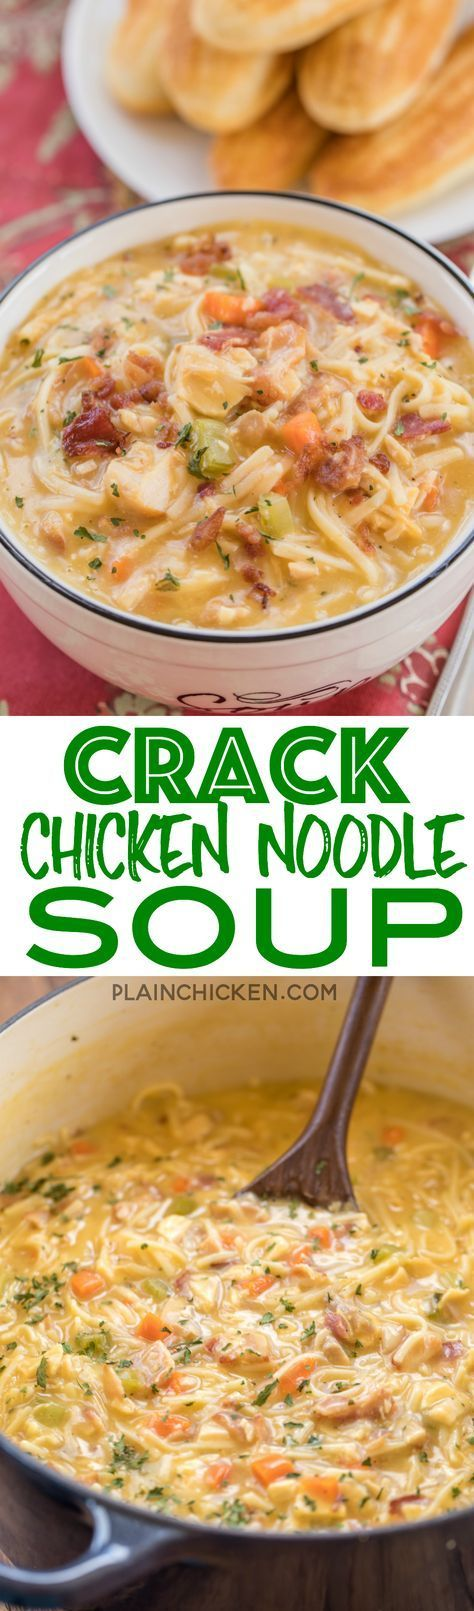 Crack Chicken Noodle Soup - this soup should come with a warning label! SO GOOD!!! Ready in 30 minutes! Chicken, cheese soup, milk, chicken broth, celery, carrots, ranch mix, bacon, cheddar cheese and egg noodles. Everyone went back for seconds - even our